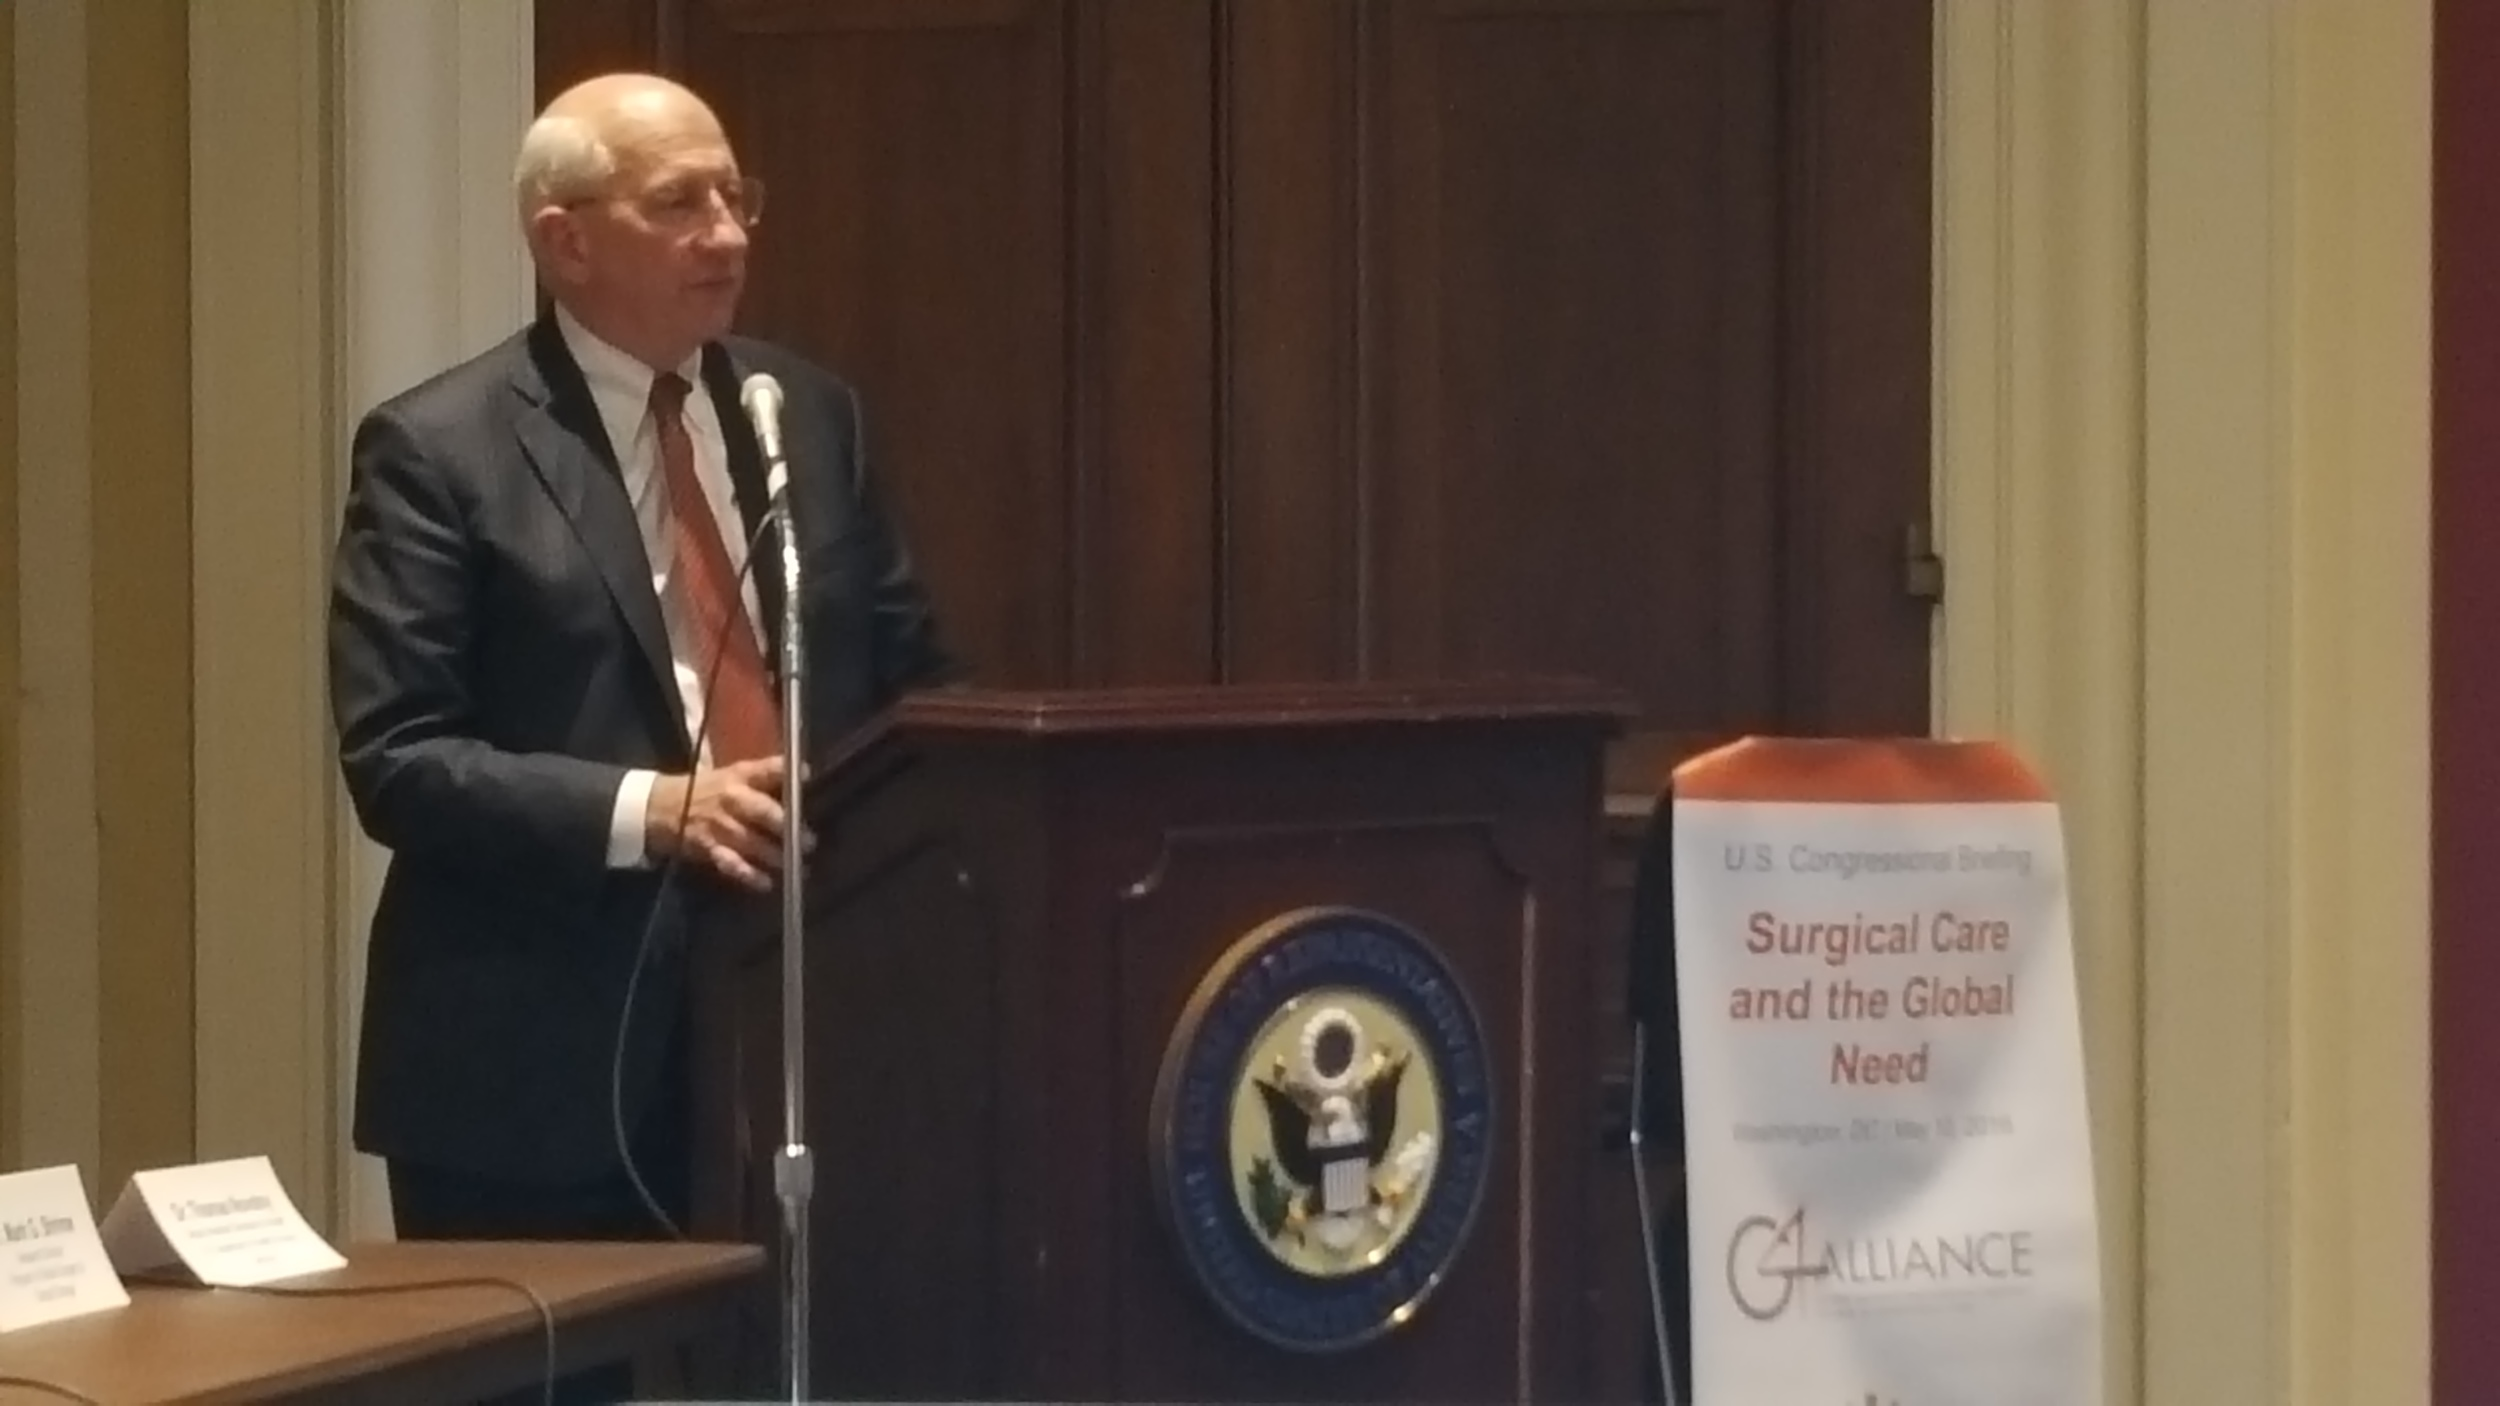 Moderator Dr. Thomas Novotny, Deputy Asst. Secretary for Health at HHS, highlights the need to augment the health workforce in order to begin to expand access to surgical care in low-resource settings.